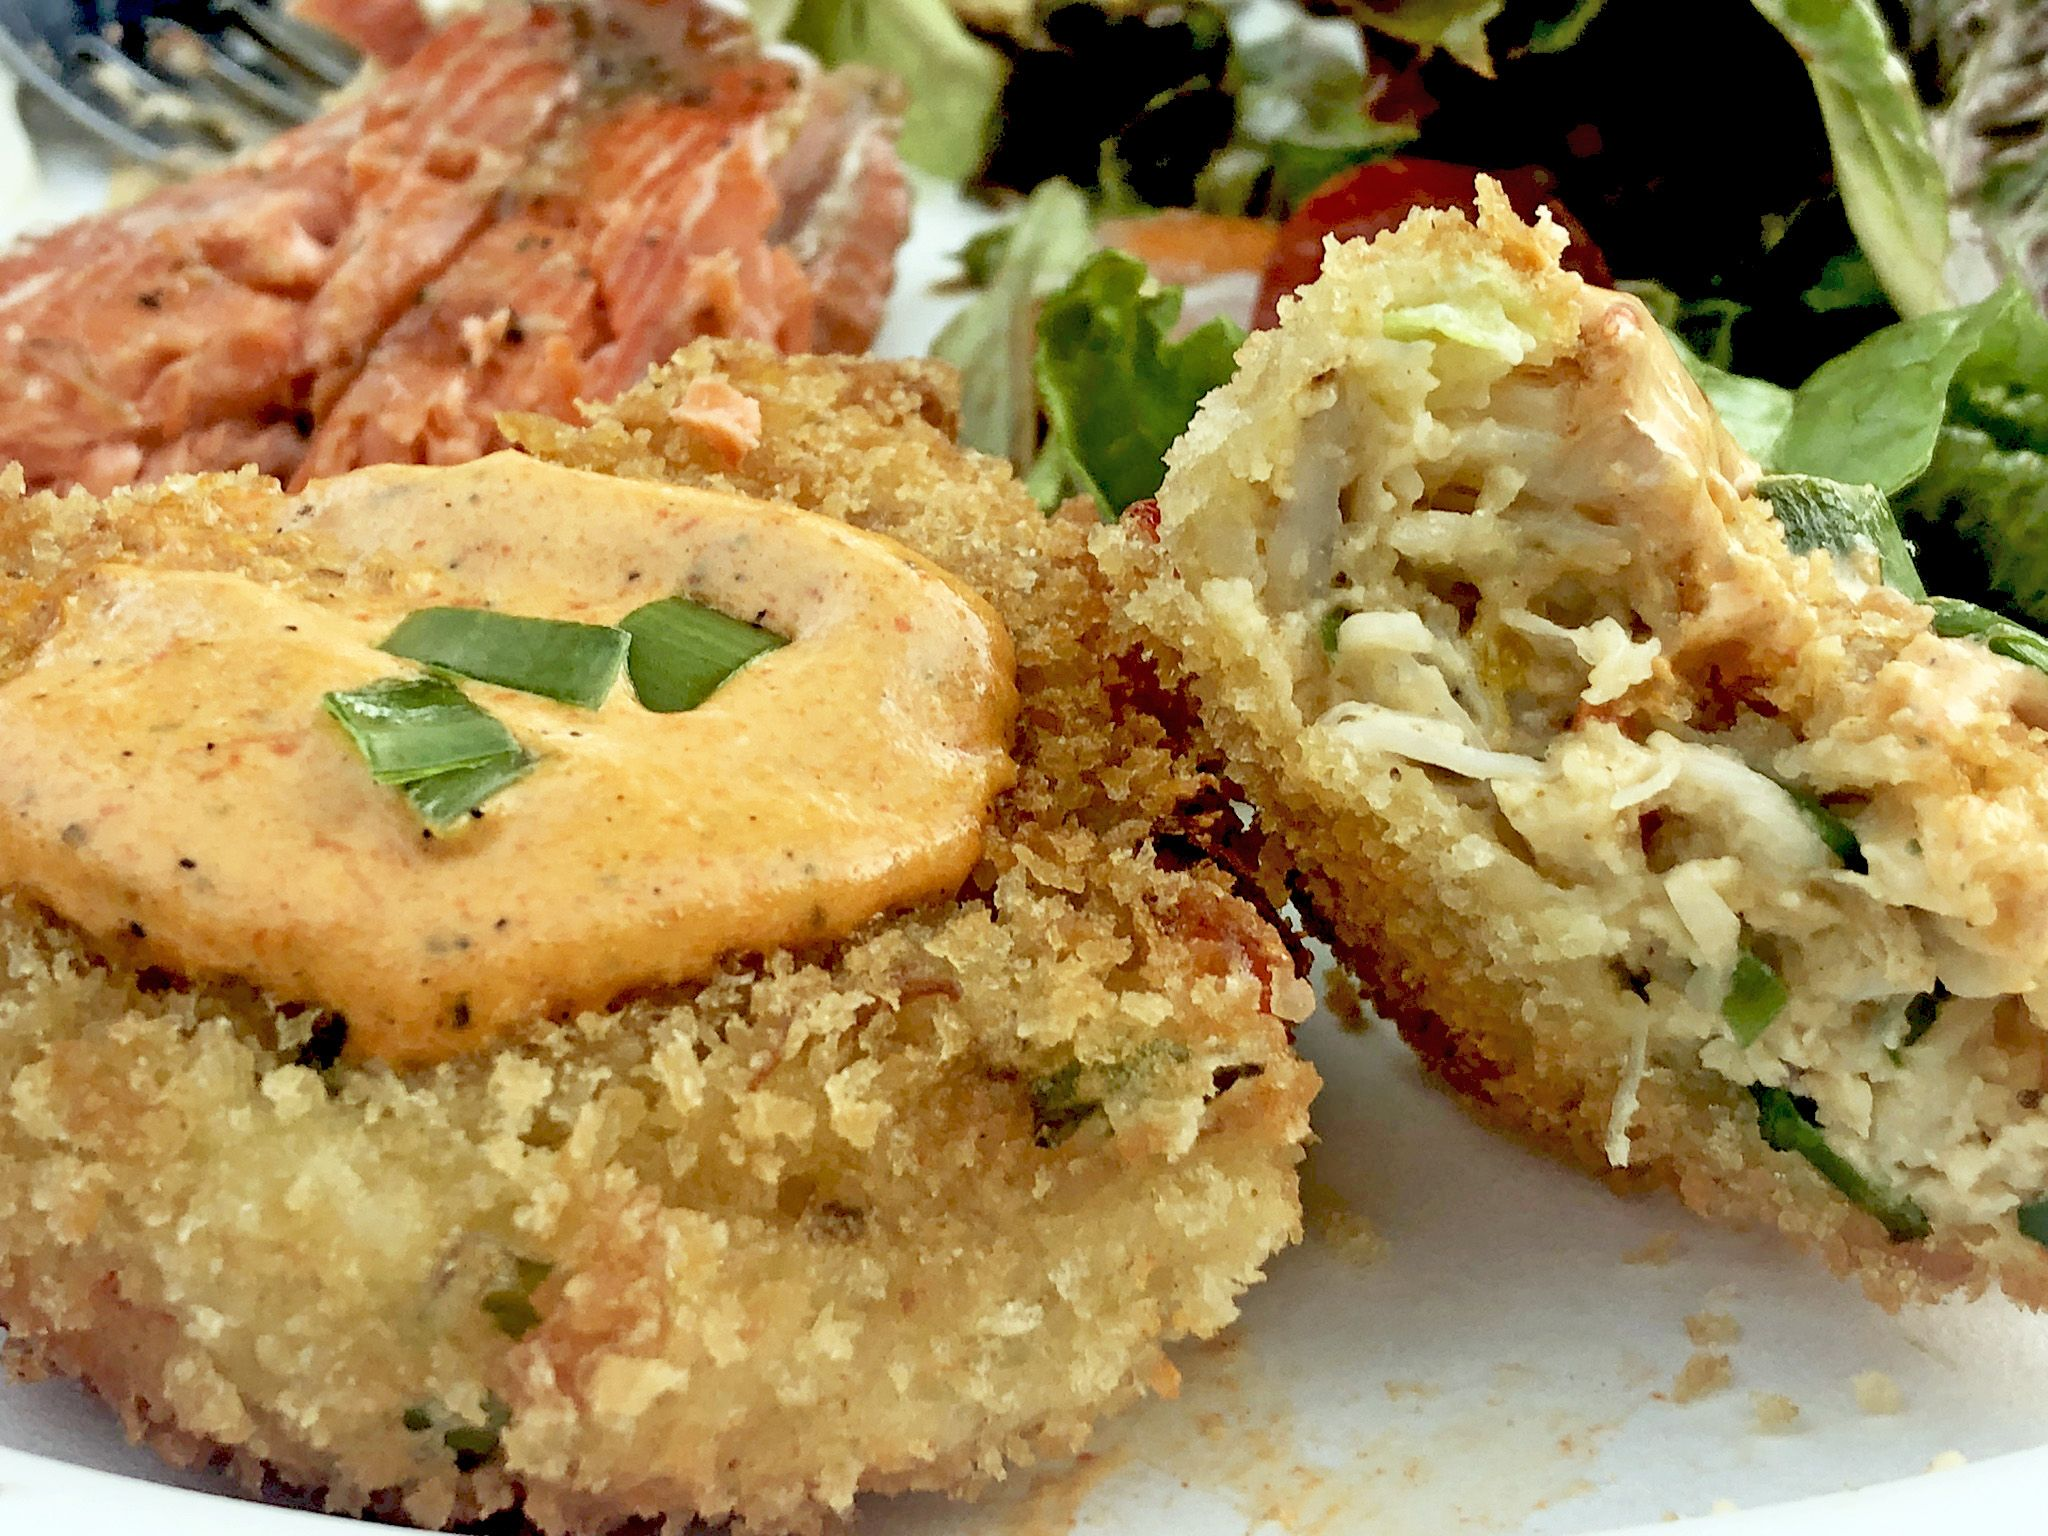 Crab cakes recipe with images crab cakes stuffed